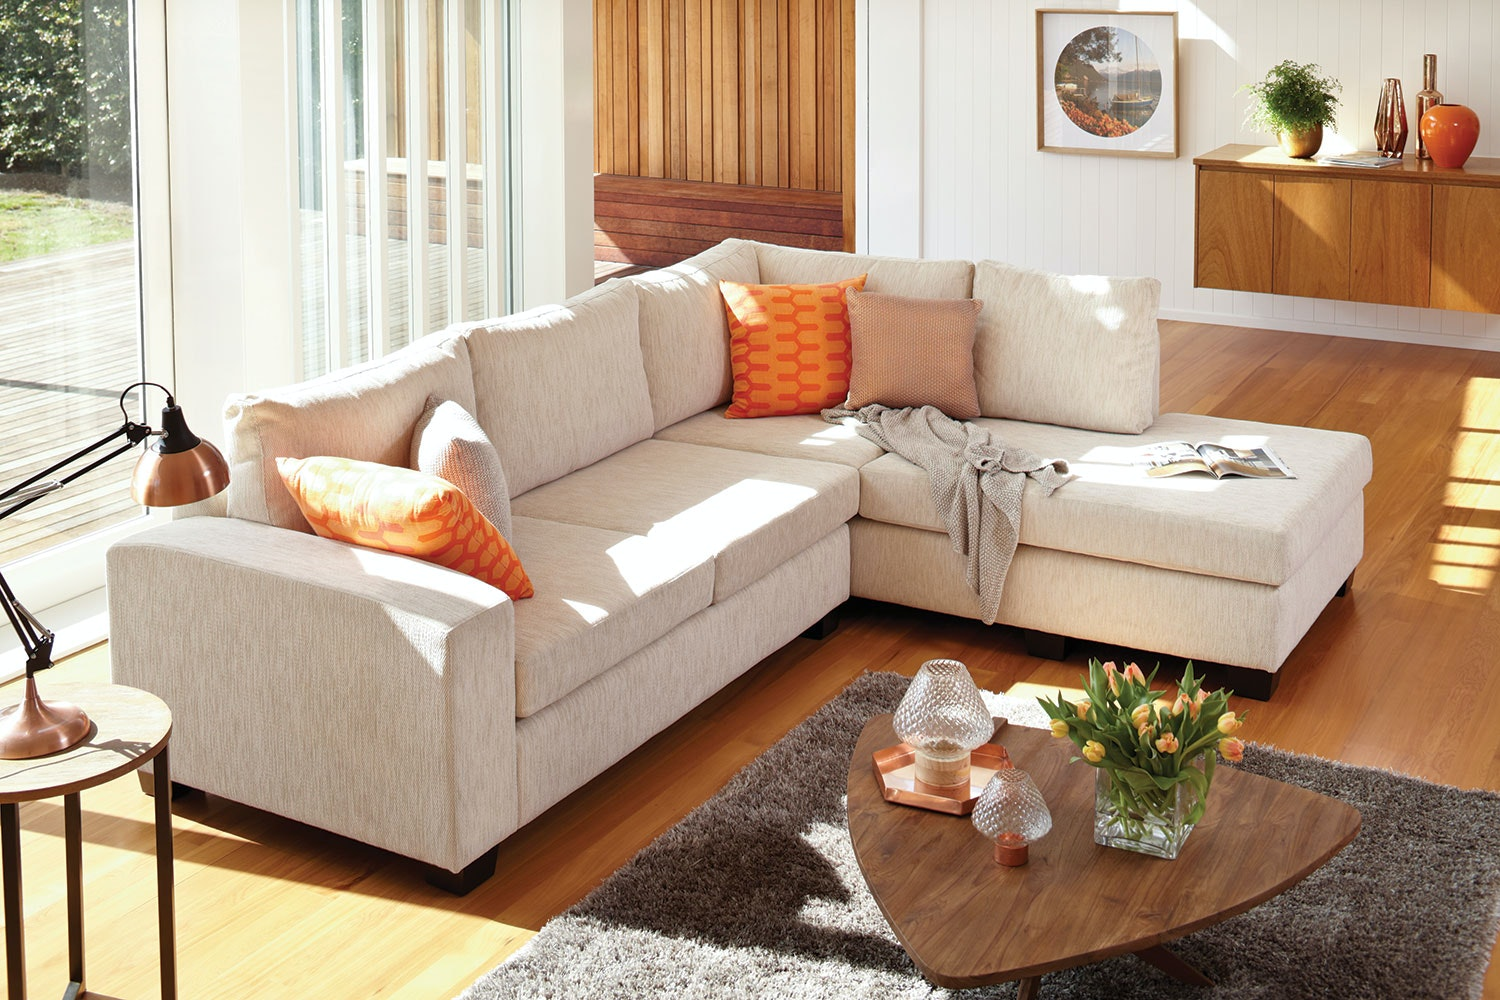 Weymouth 4-Seater Fabric Chaise Sofa : harvey norman chaise - Sectionals, Sofas & Couches